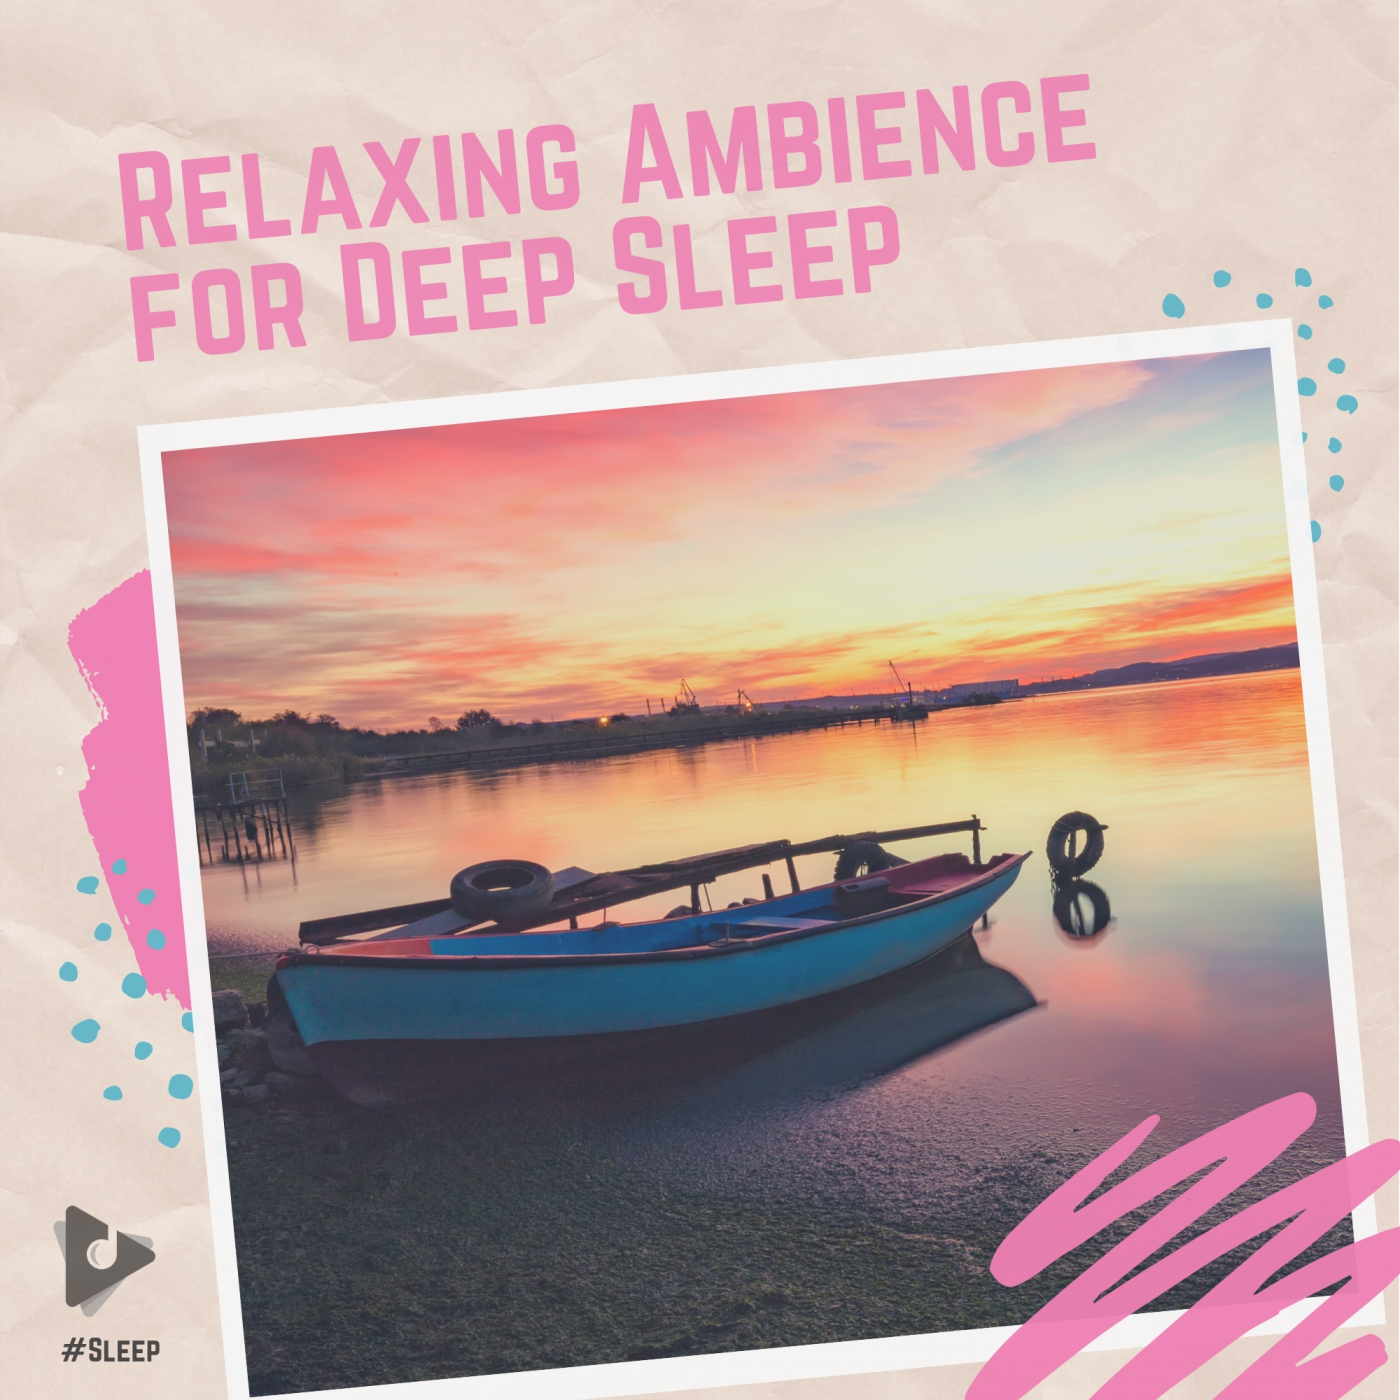 Relaxing Ambience for Deep Sleep